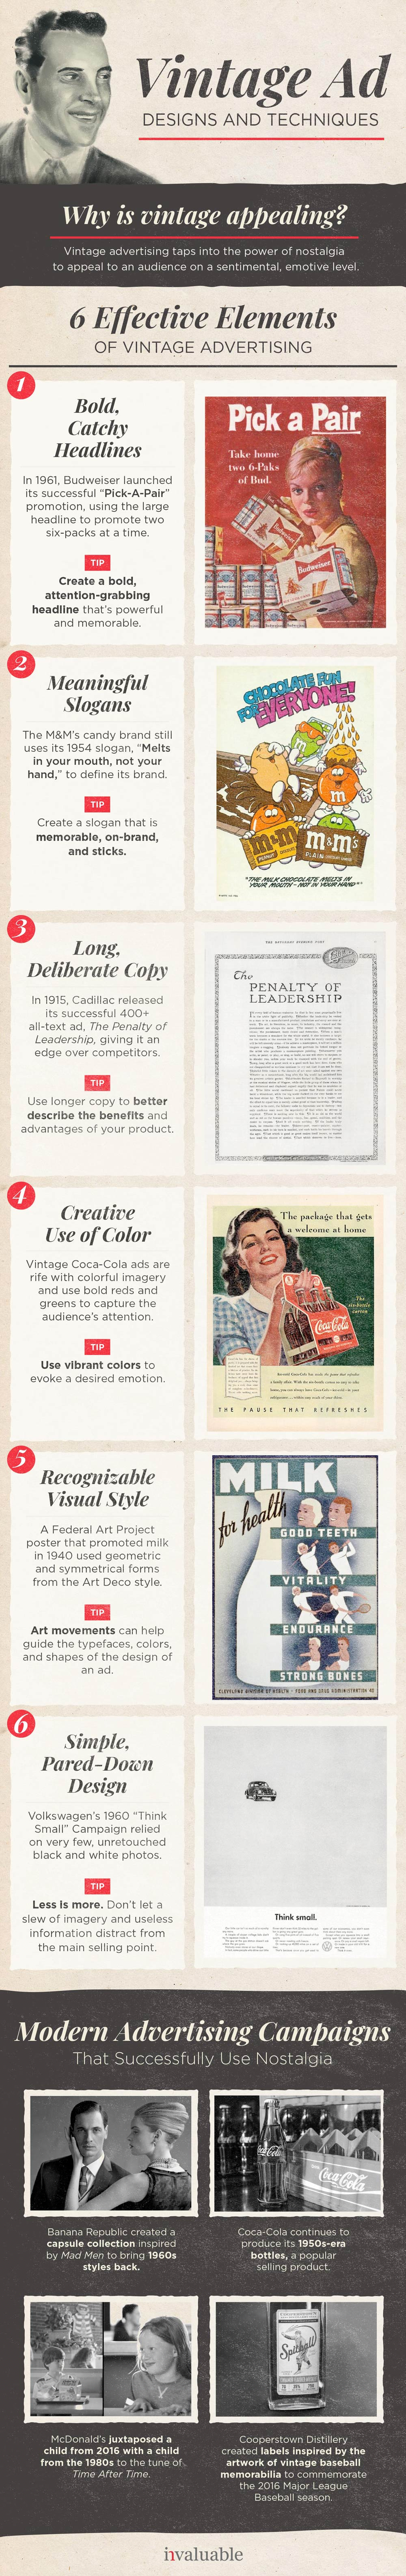 vintage ads visual marketing design